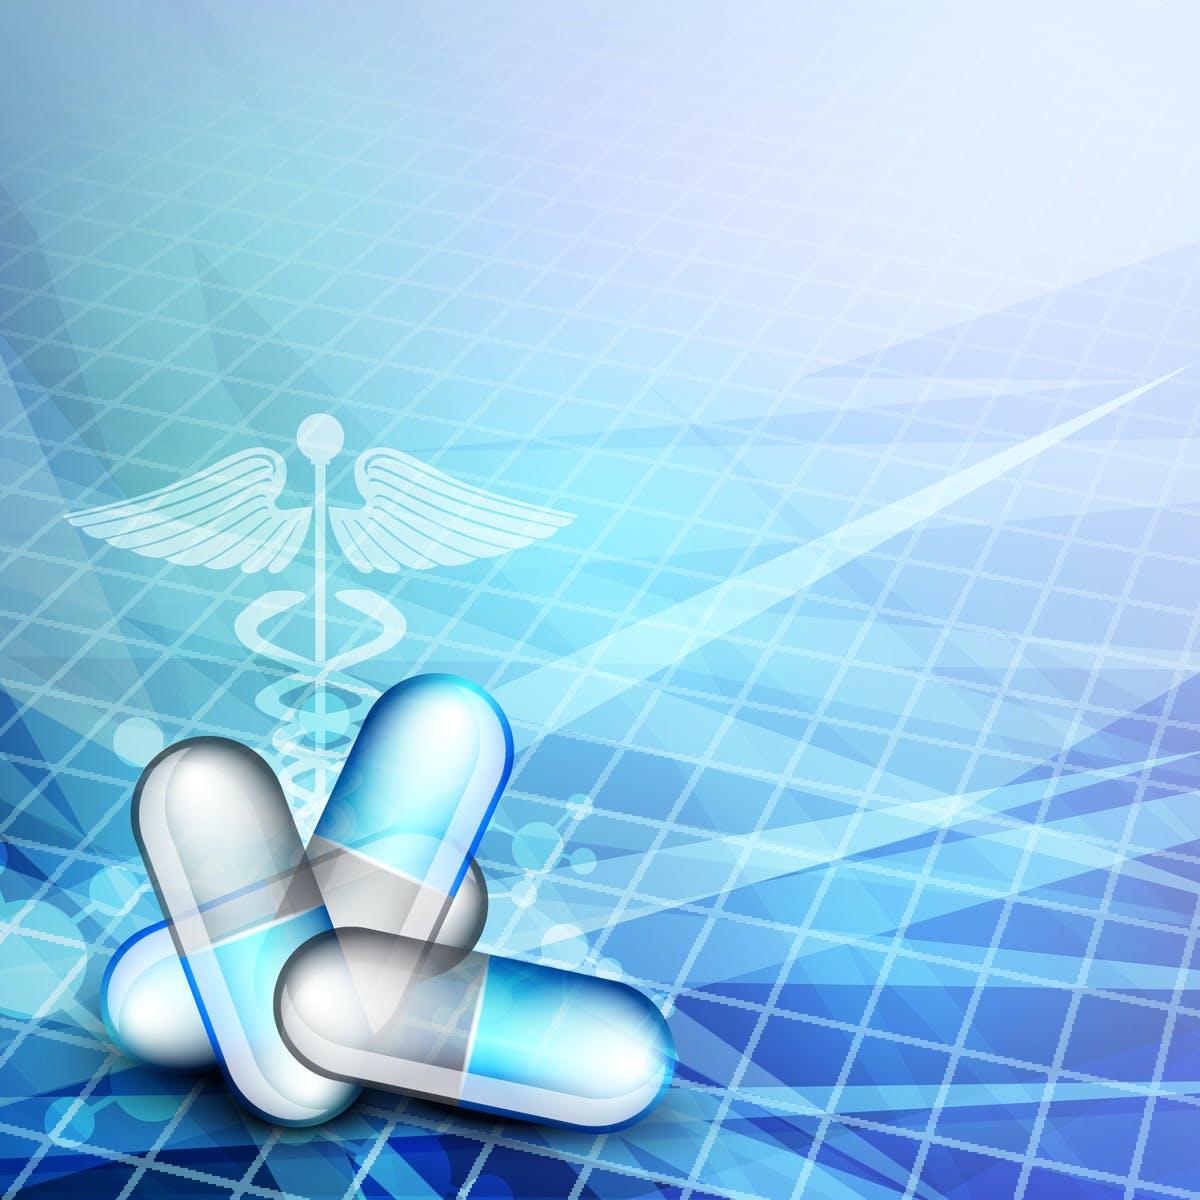 Pharmaceutical and Medical Device Innovations